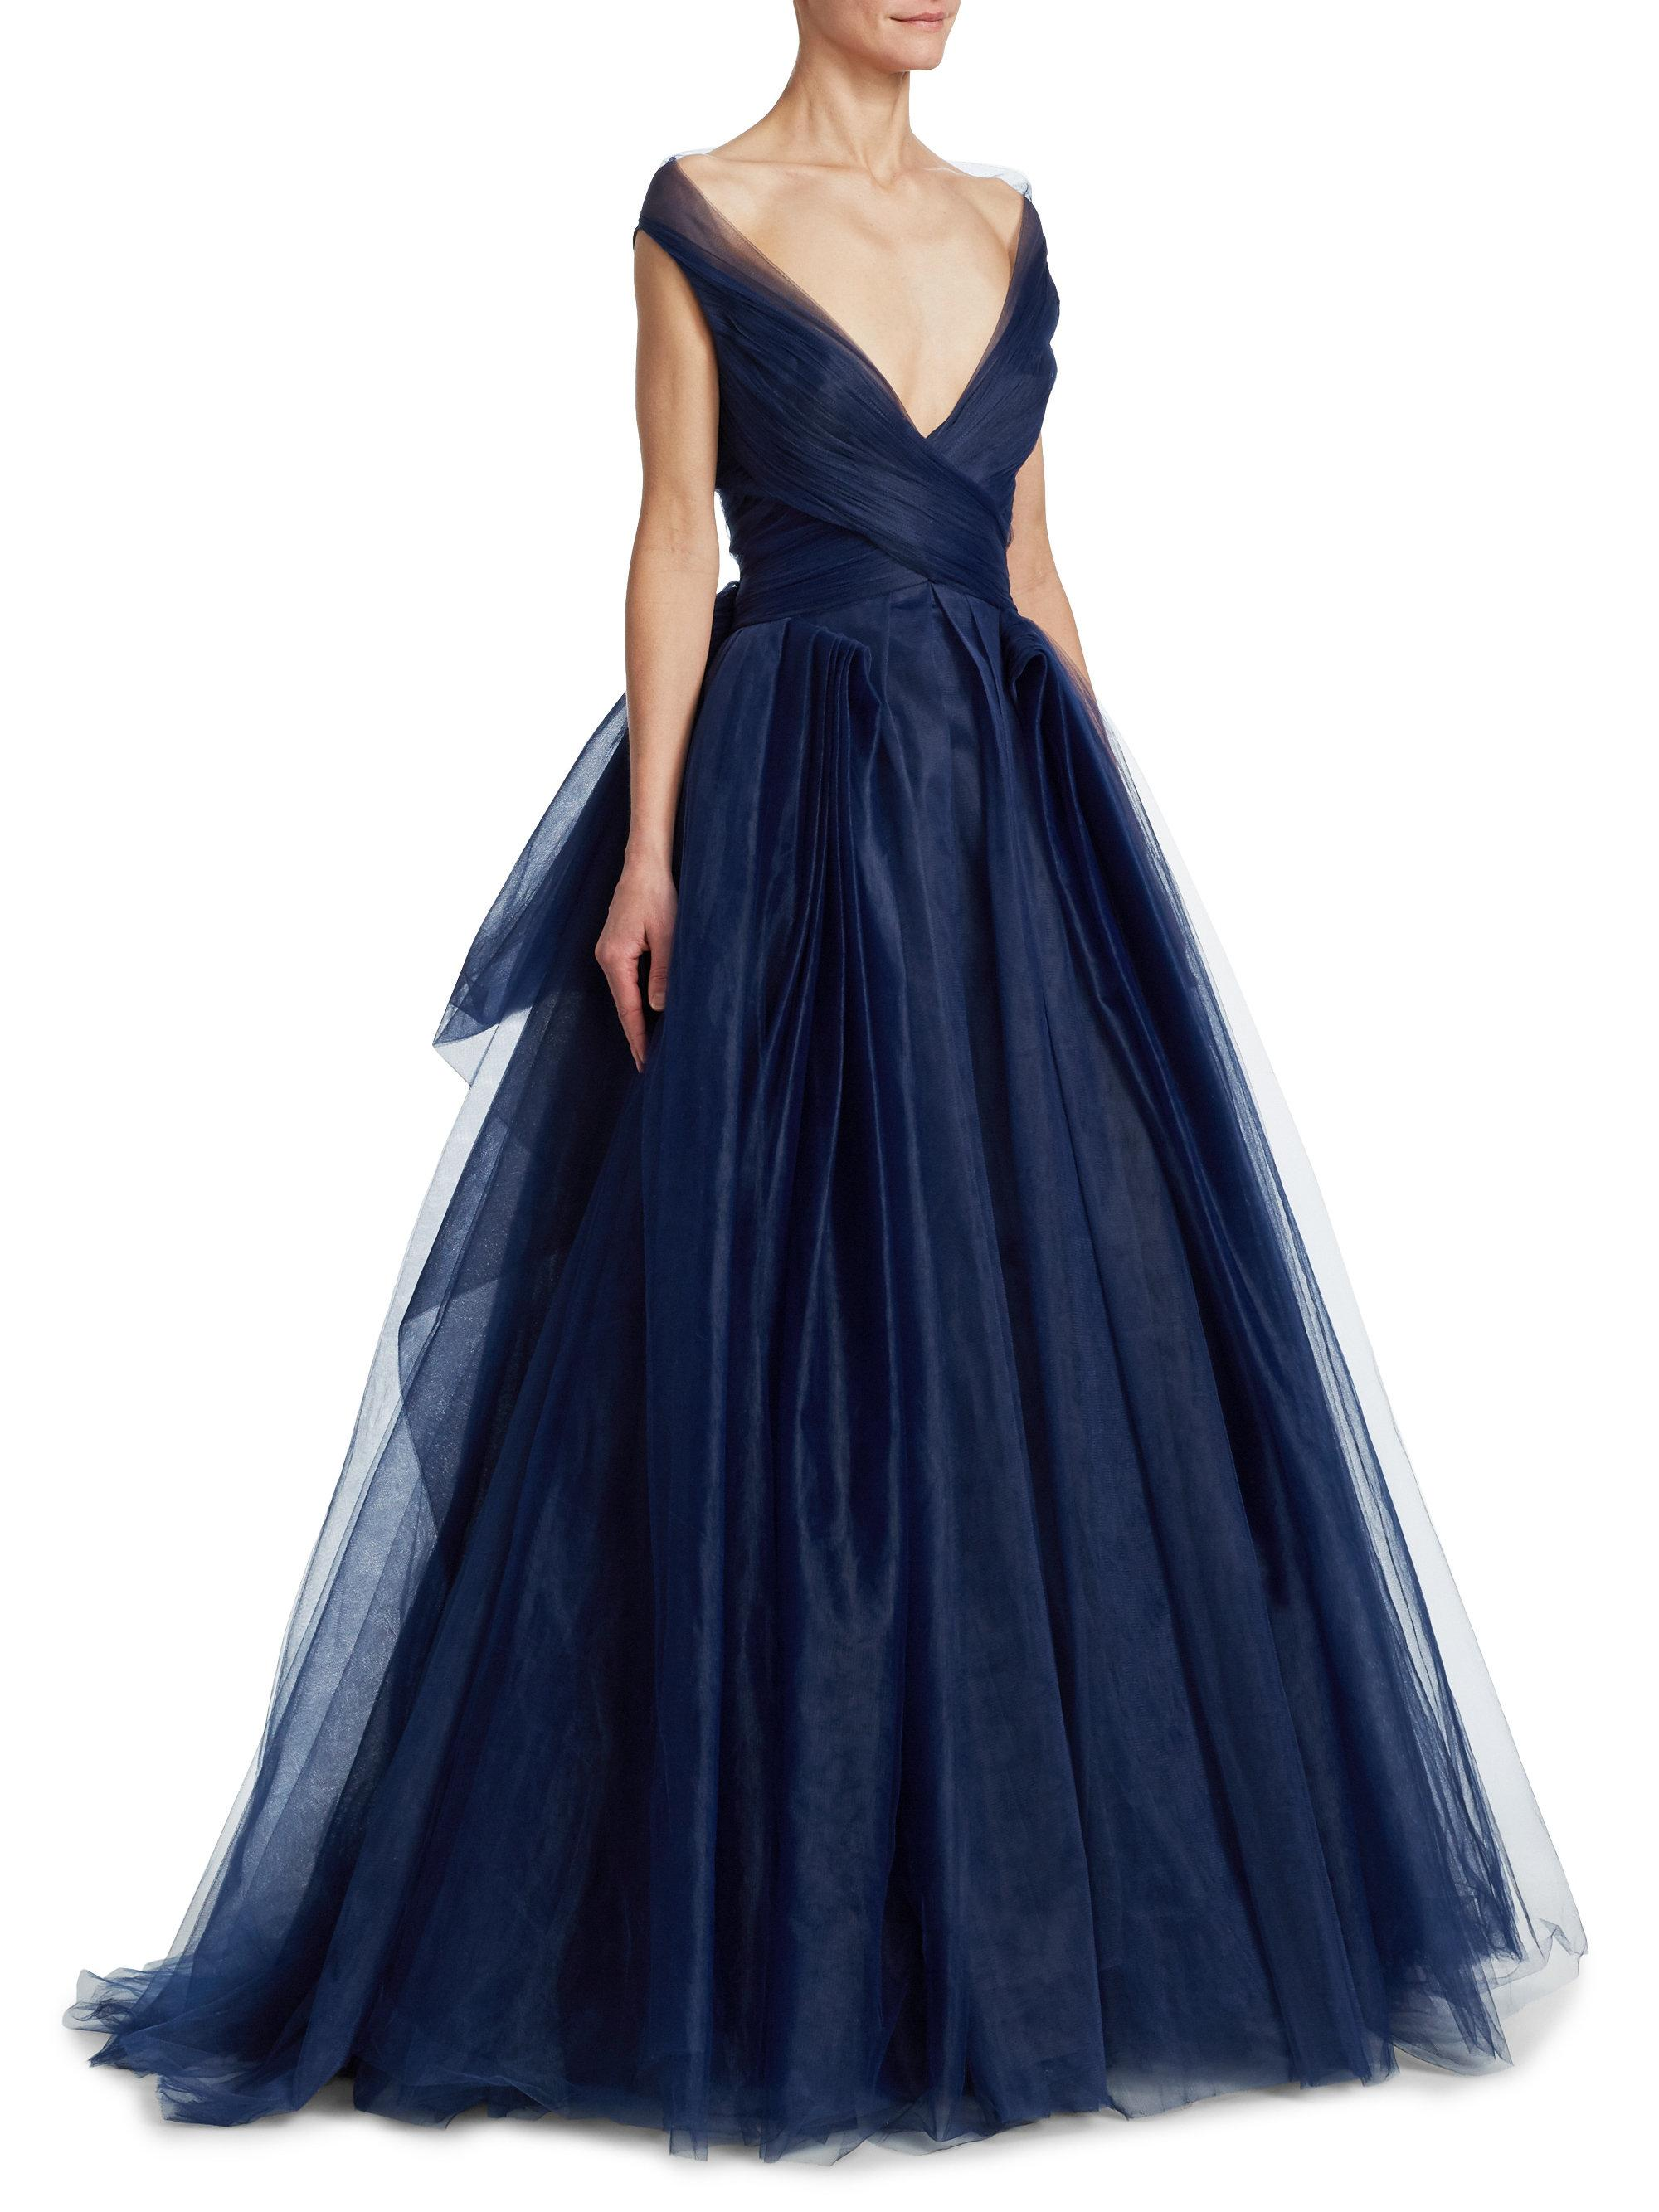 Zac Posen Convertible Tulle Ball Gown in Blue - Lyst